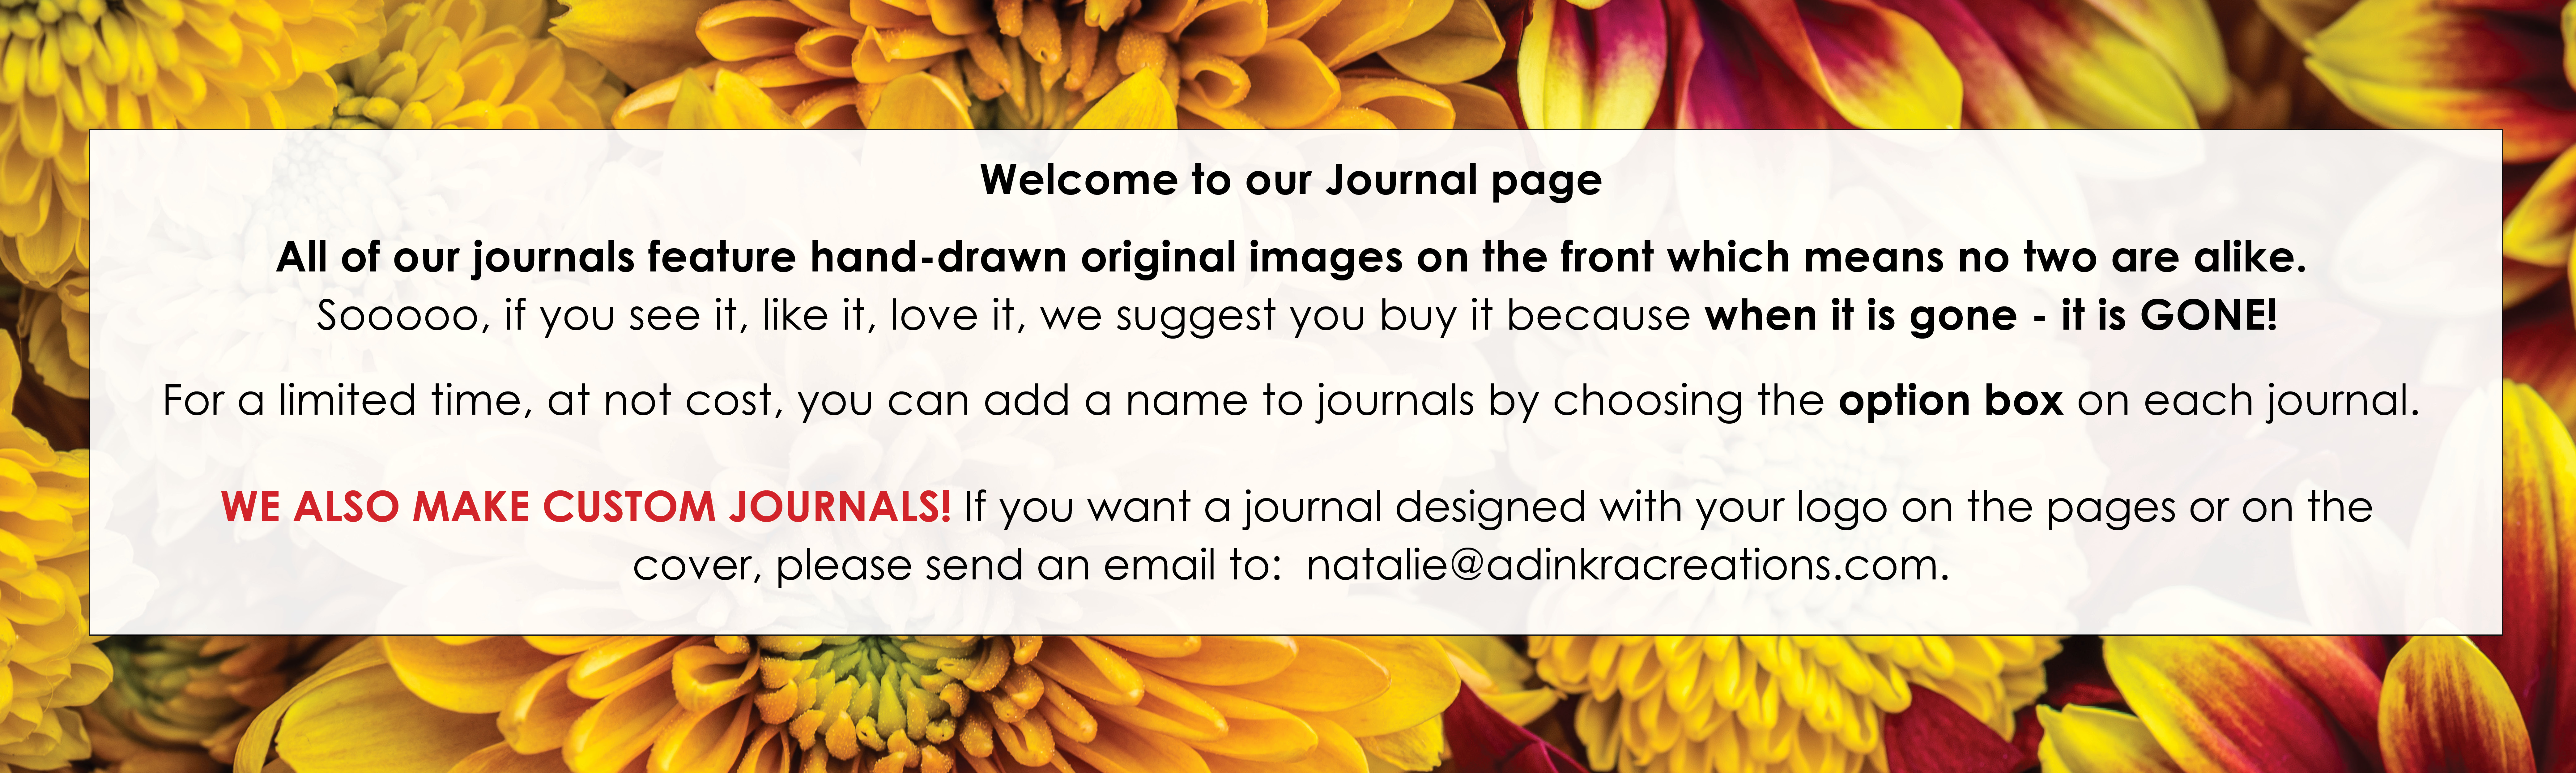 journals-home-page-image-wide.jpg